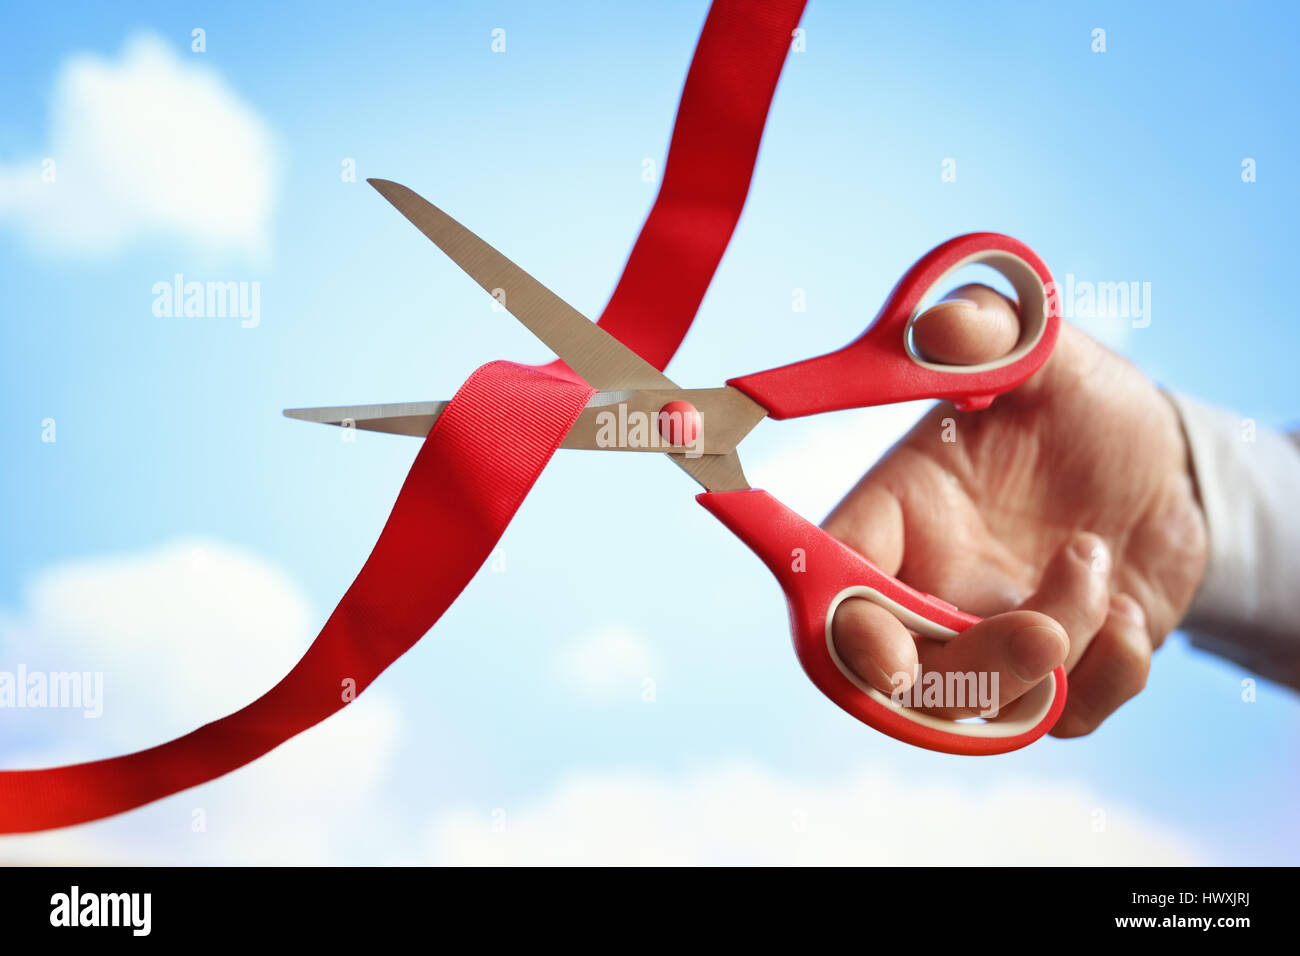 Businessman cutting a red ribbon with a pair of scissors at opening ceremony - Stock Image